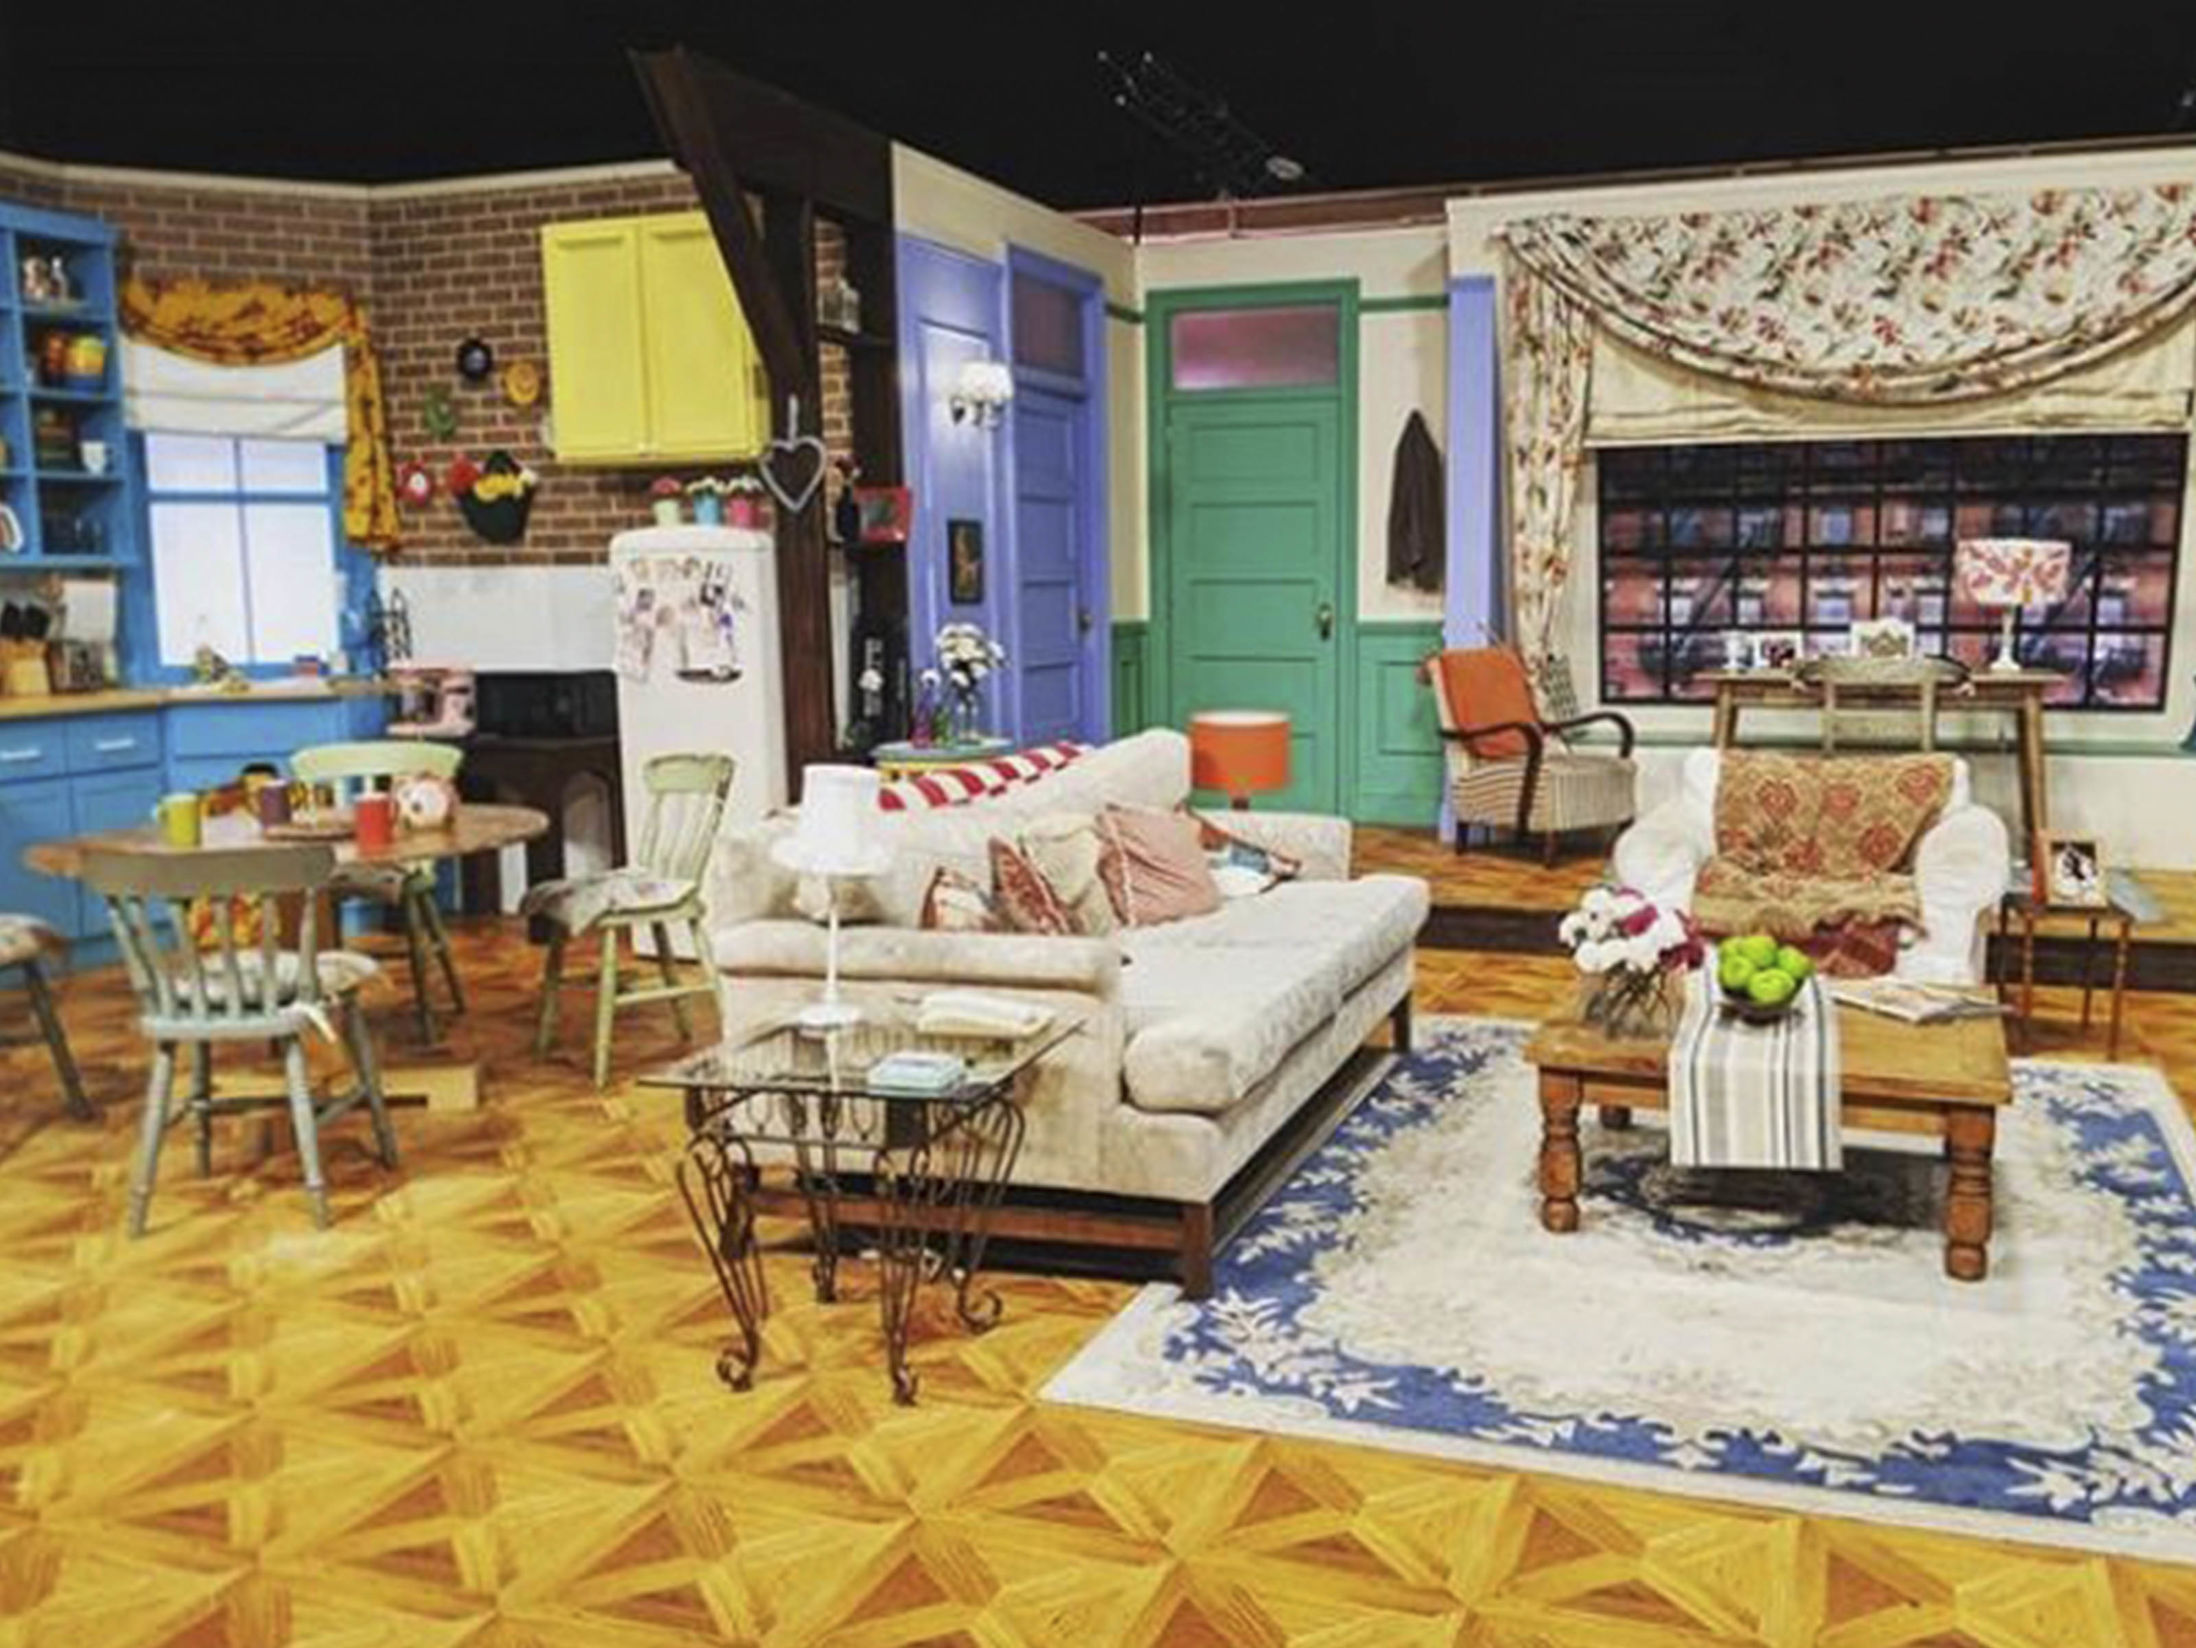 Manchester Events to Know About - FriendsFest